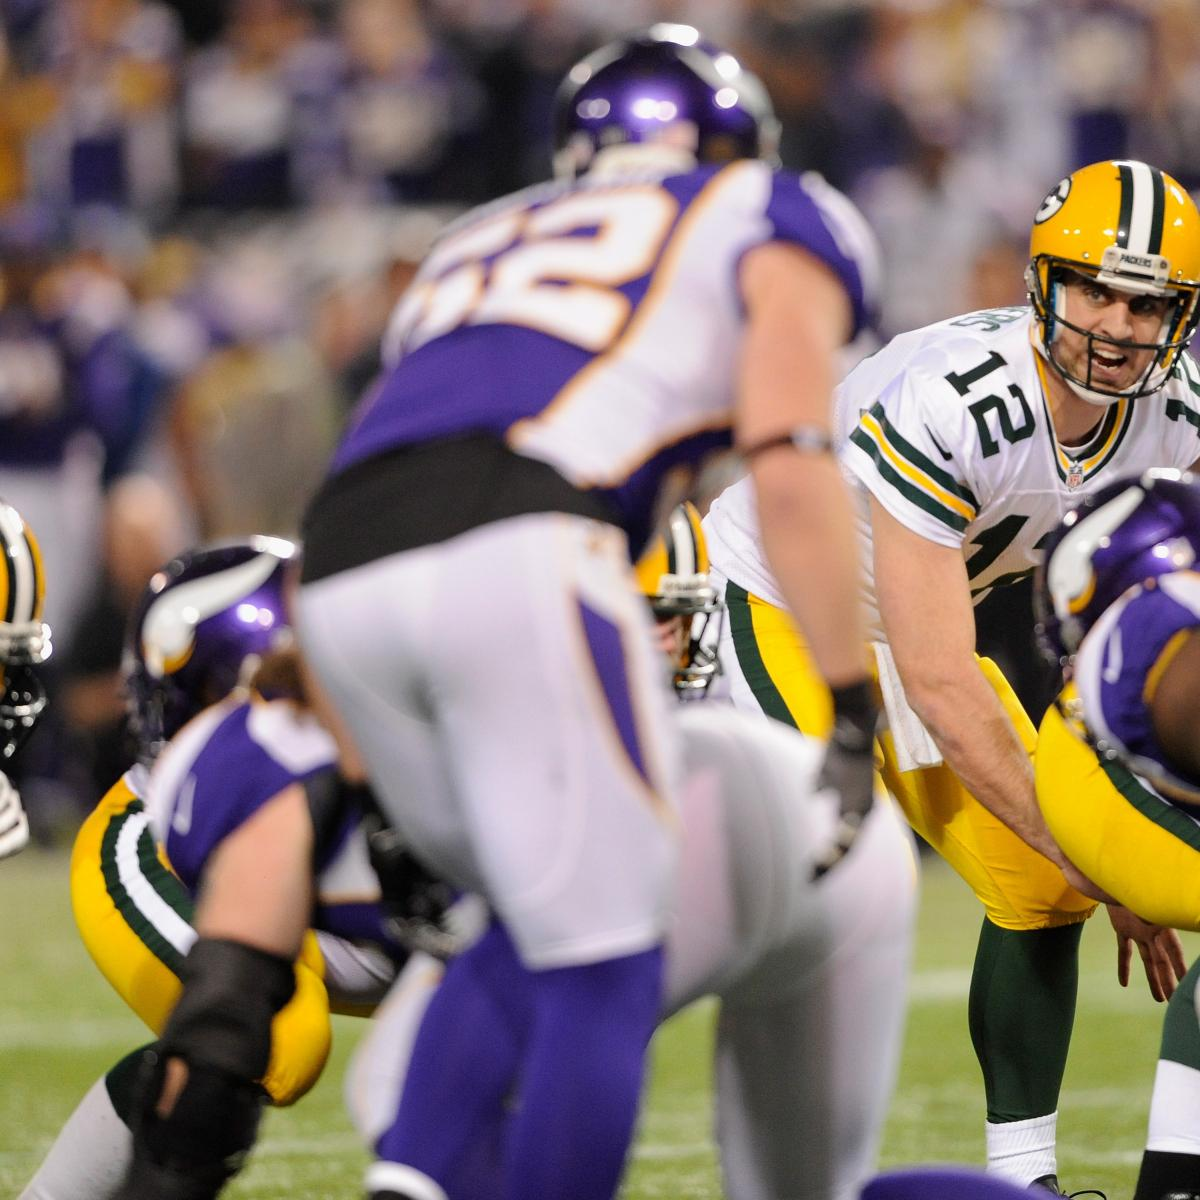 NFL Wild Card Schedule 2013: Dates, Times, AFC And NFC